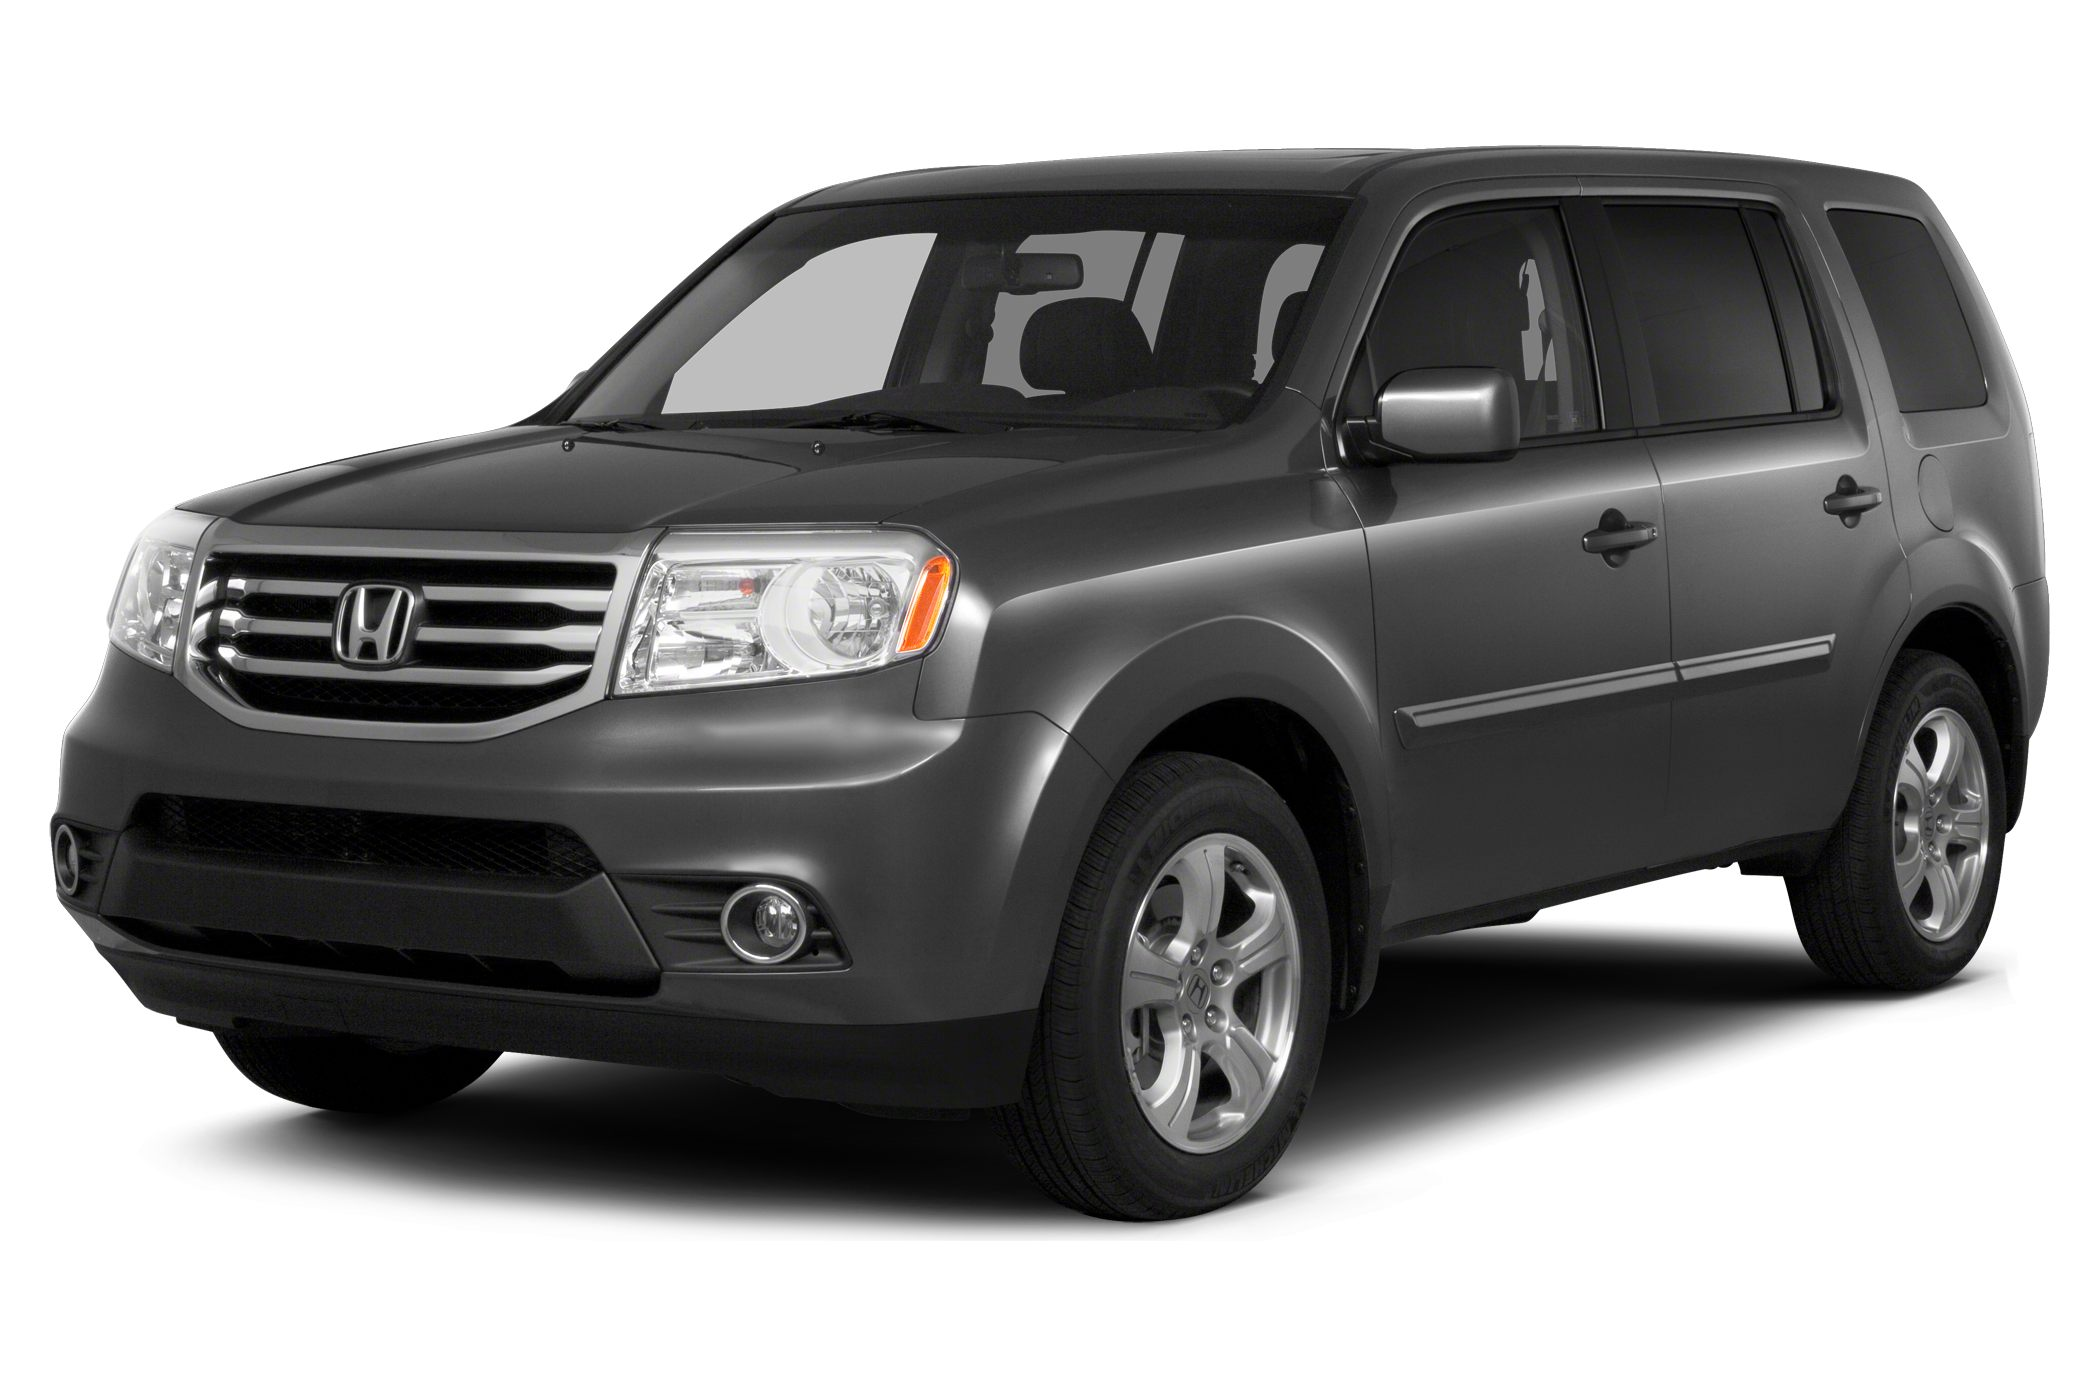 2013 Honda Pilot EX-L SUV for sale in Lancaster for $32,999 with 35,879 miles